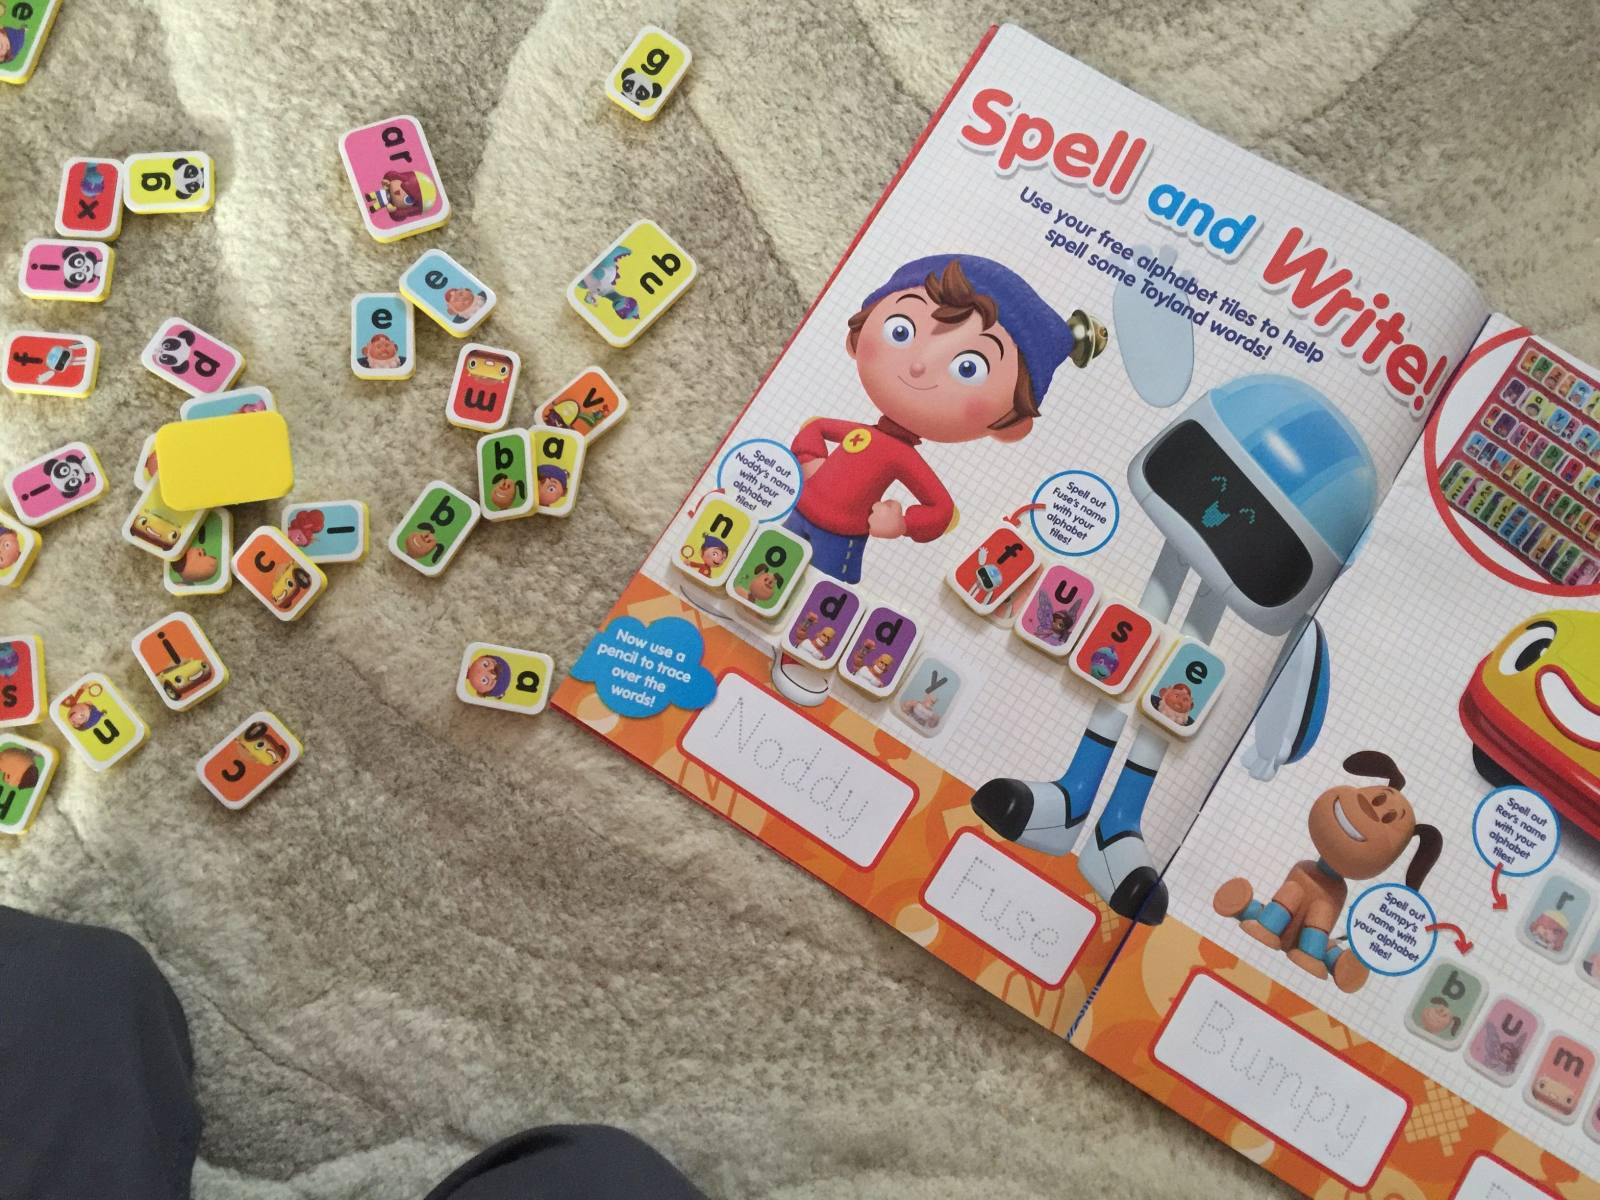 noddy magazine review - free gift of alphabet tiles